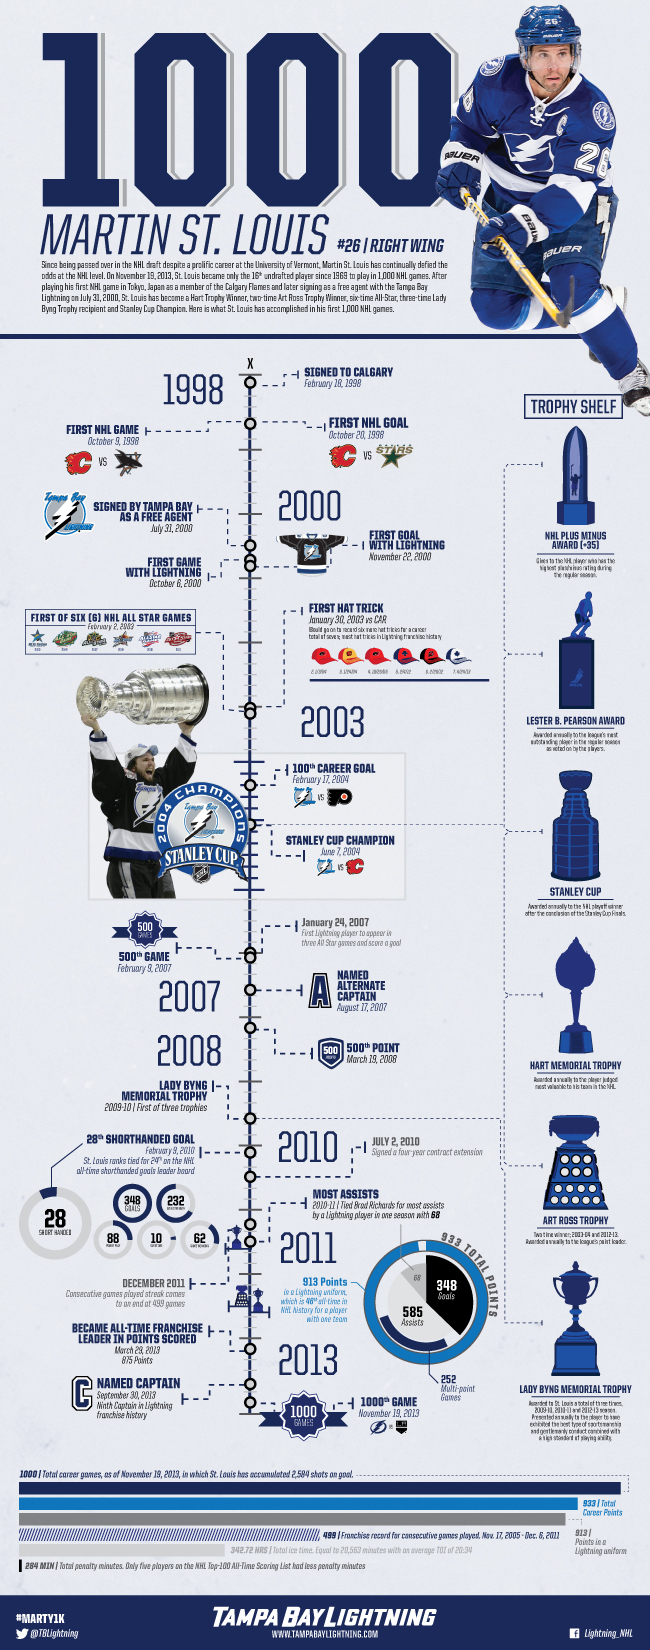 Tampa Bay Lightning forward Martin St. Louis skated in this 1000th Career NHL game on November 19, 2013. Take a look at his prolific career.